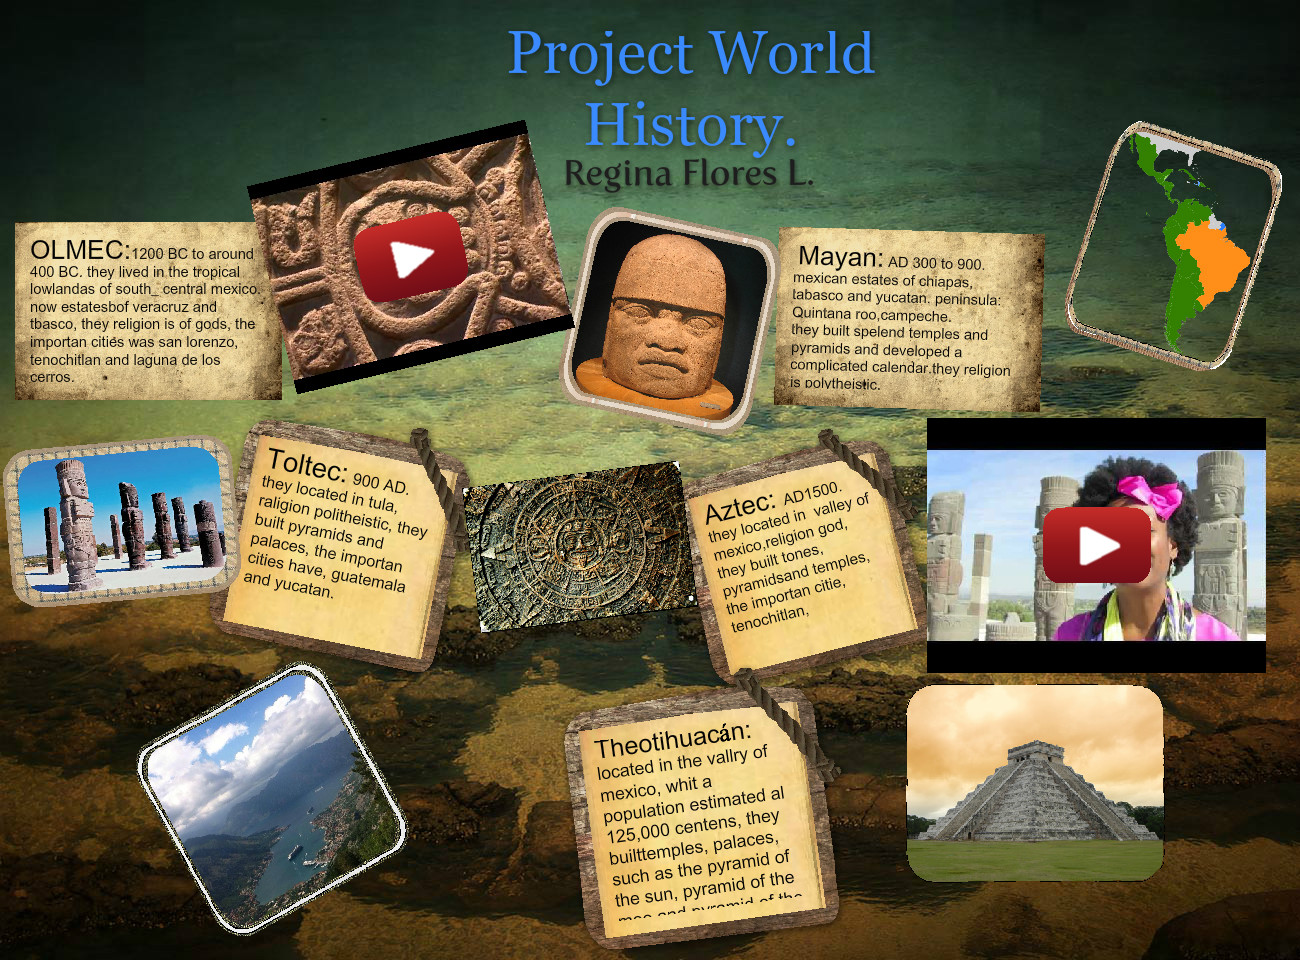 Project World History